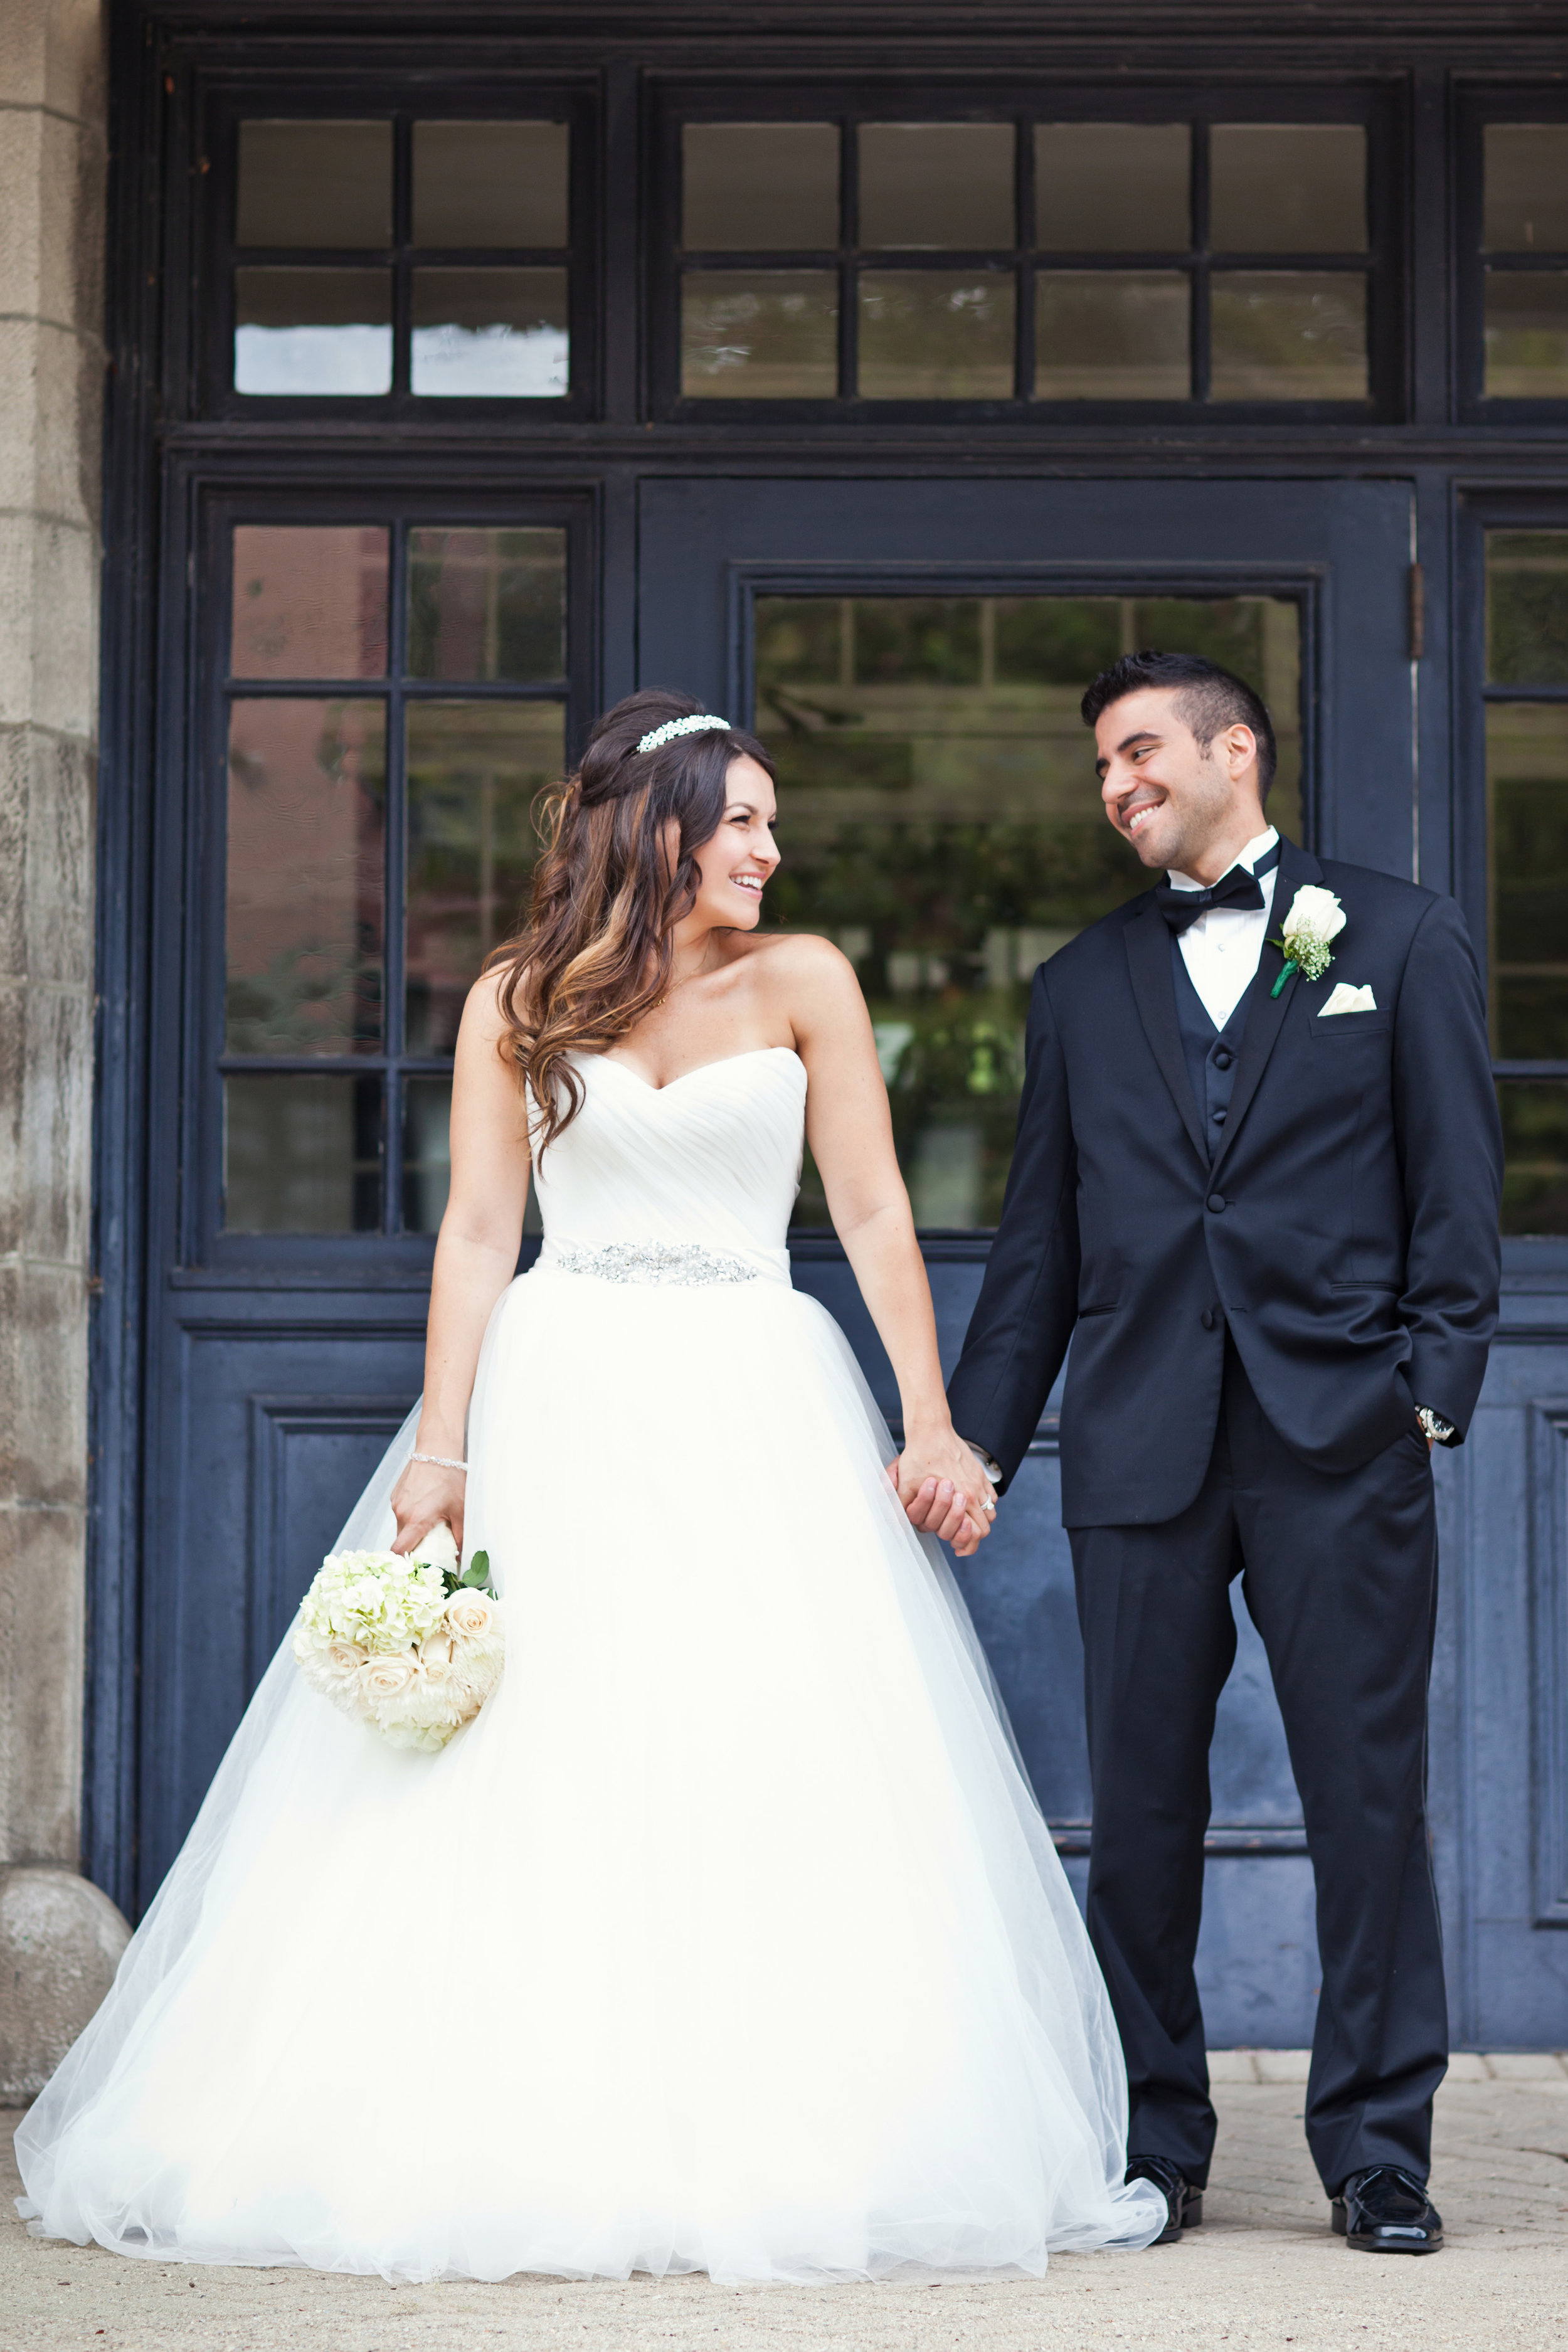 Stylish Wedding Photography Toronto Windsor Detroit Eryn Shea Photography